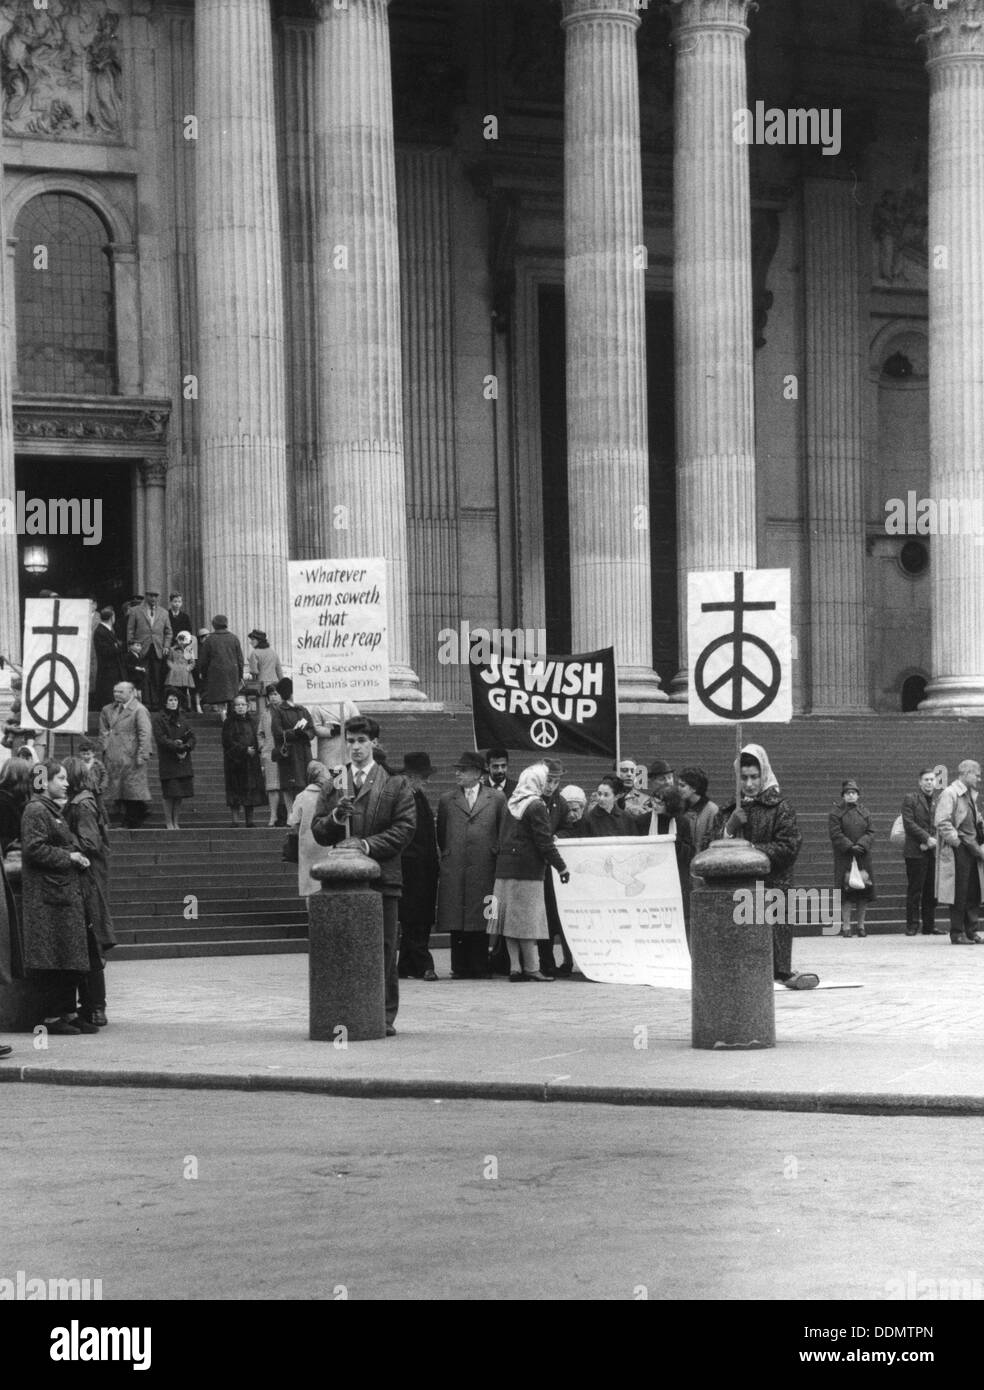 Jewish CND group at St Paul's Cathedral, London, 27 March 1964. Artist: EH Emanuel - Stock Image